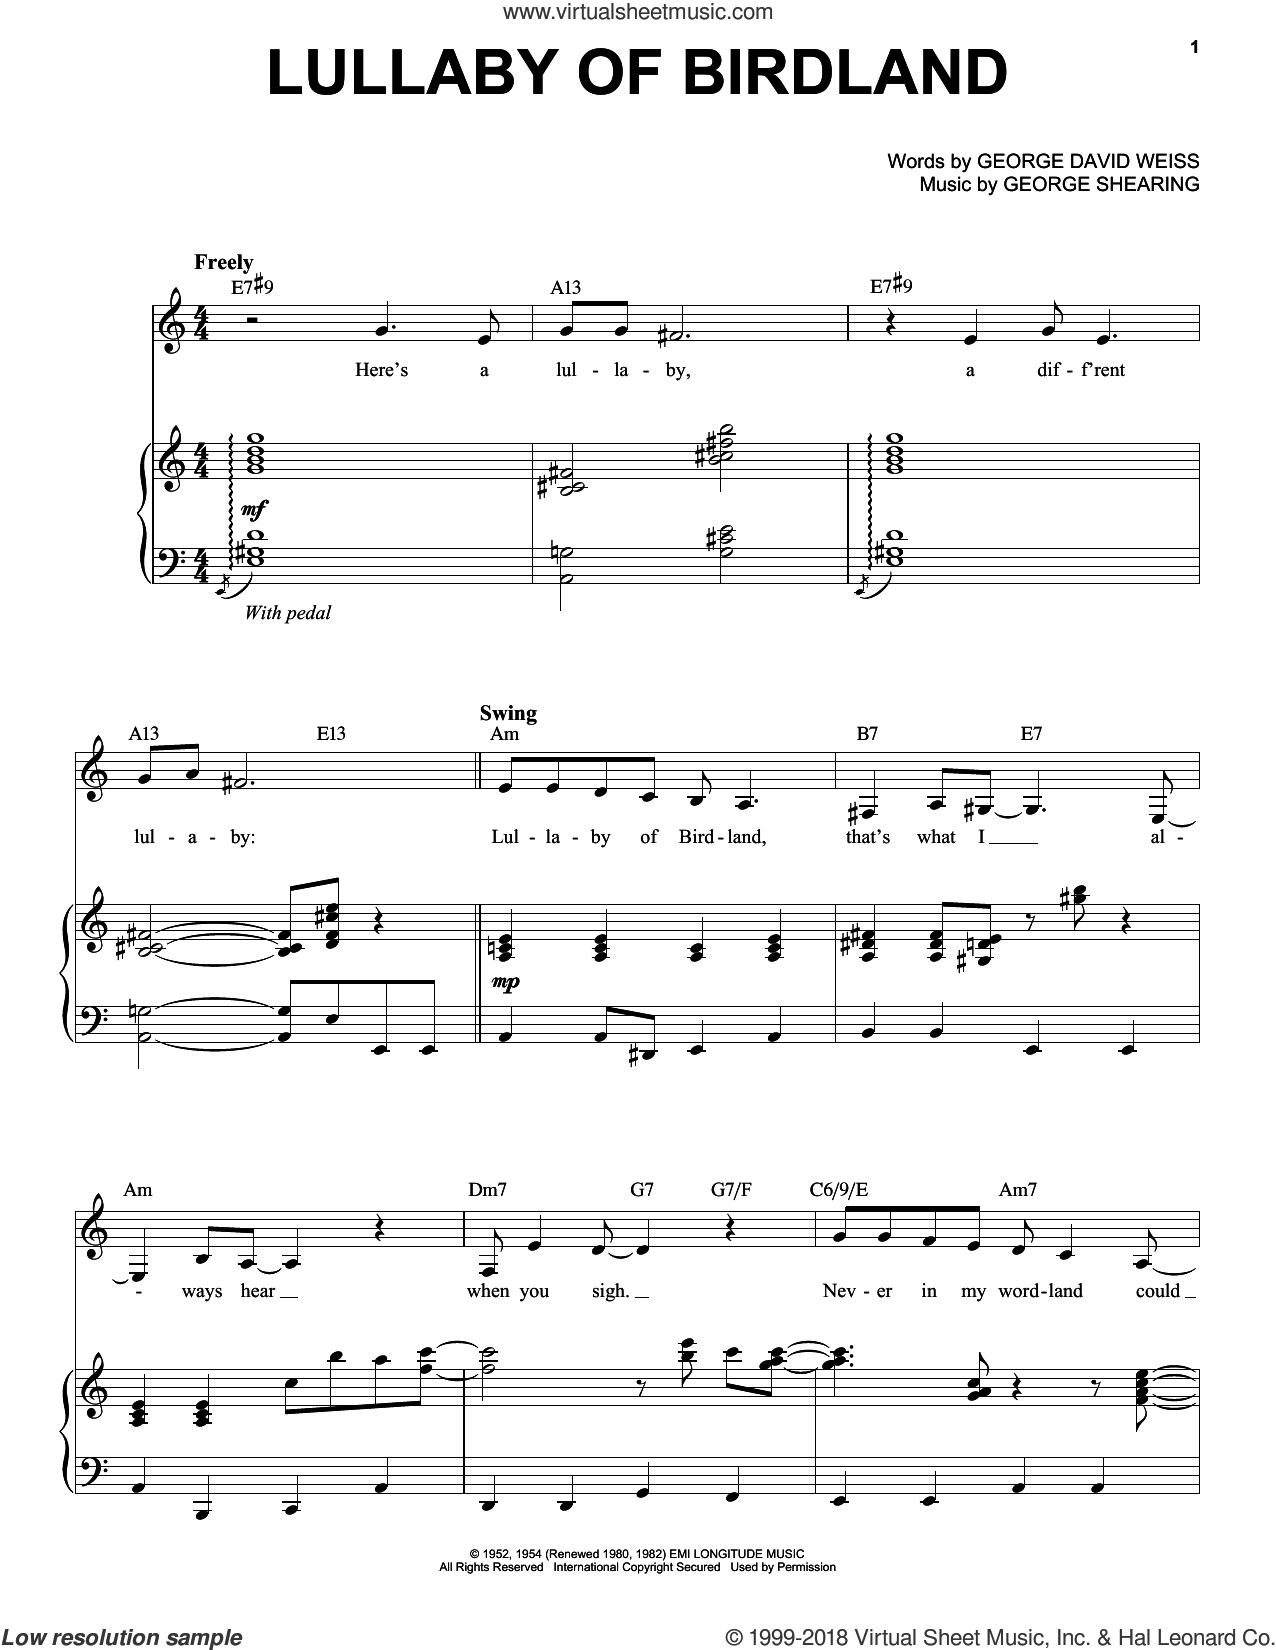 Lullaby Of Birdland sheet music for voice and piano by Chris Connor, George David Weiss and George Shearing, intermediate skill level